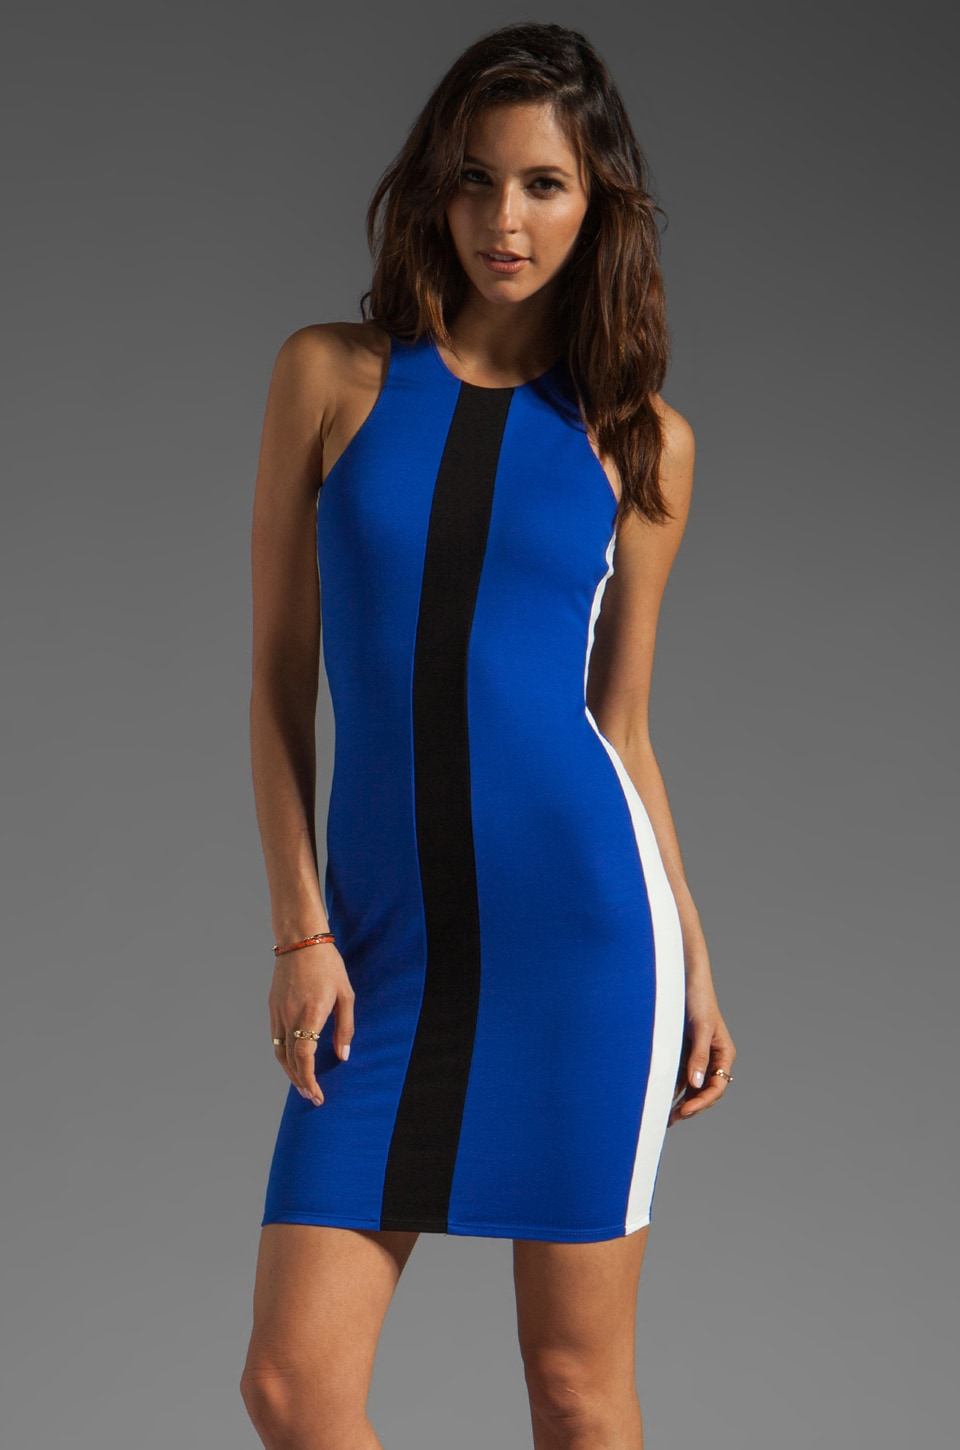 Mason by Michelle Mason Tri-Coloured Tank Dress in Blue